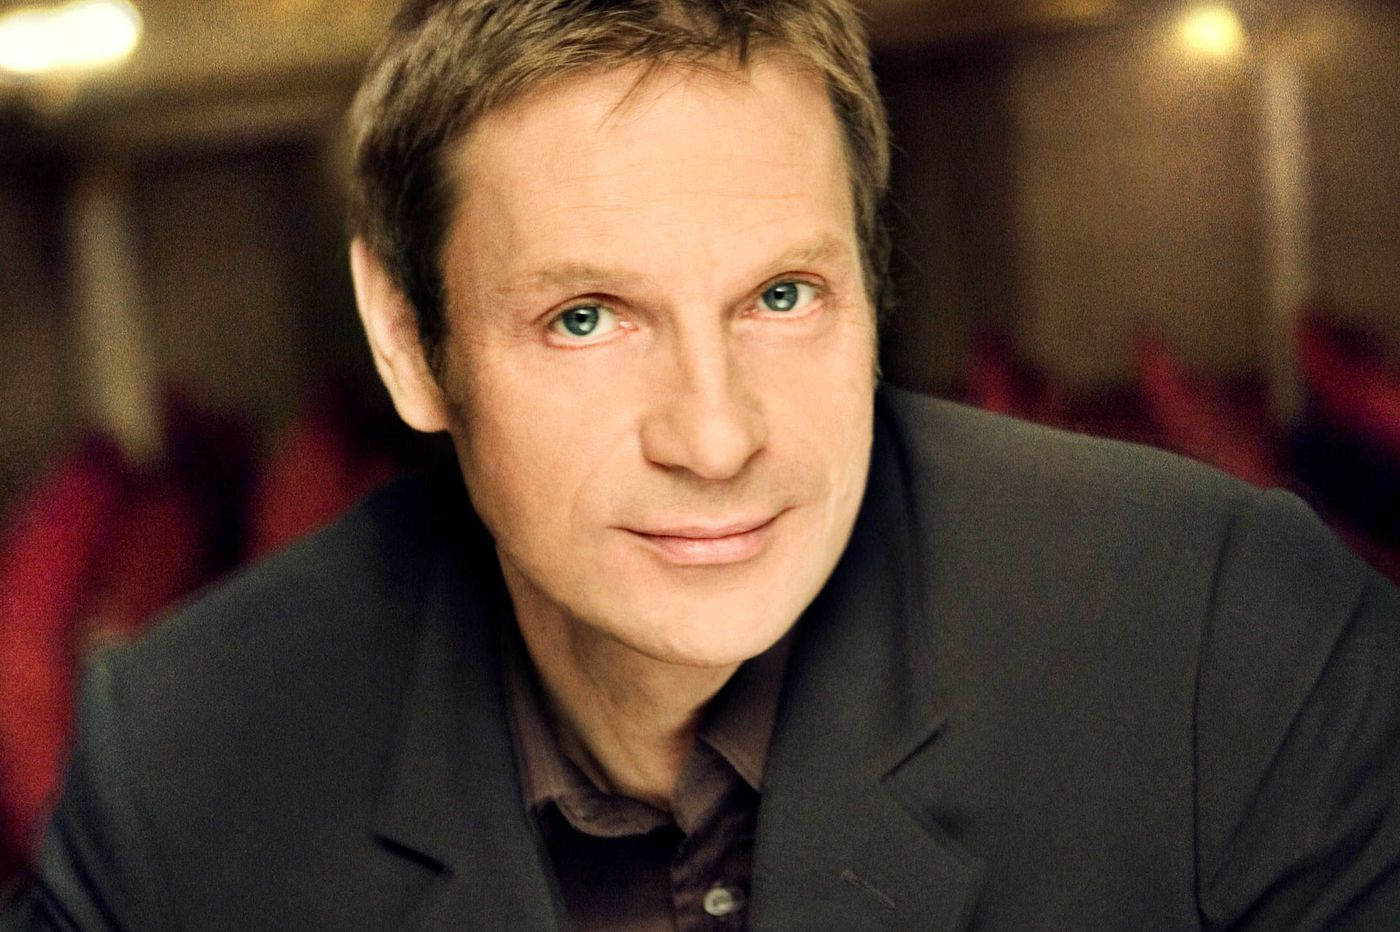 Baritone Simon Keenlyside and pianist Malcolm Martineau magnificent at Philadelphia Chamber Music Society